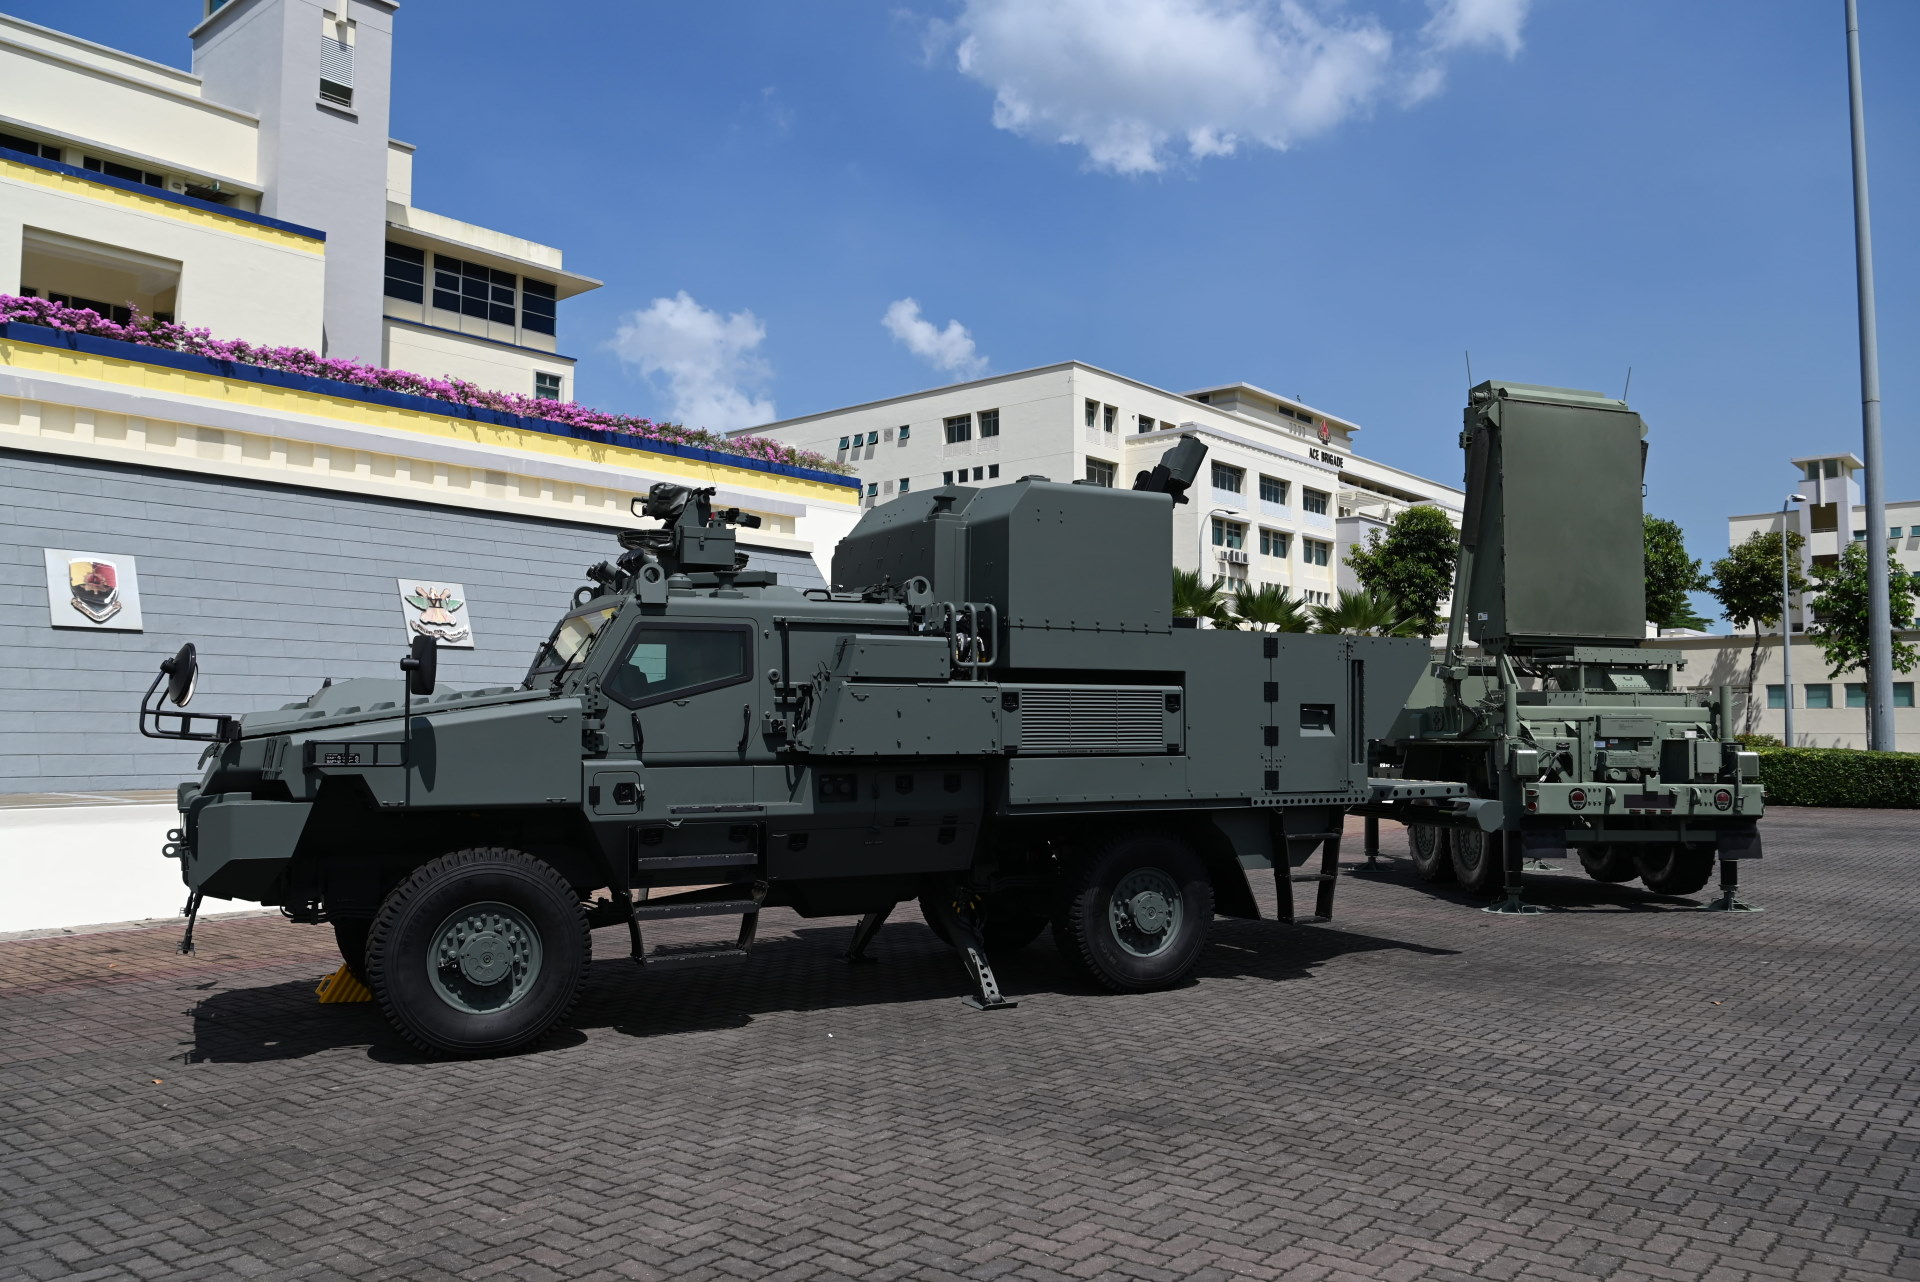 BELREX Protected Combat Service Vehicle with the Advanced Mortar System